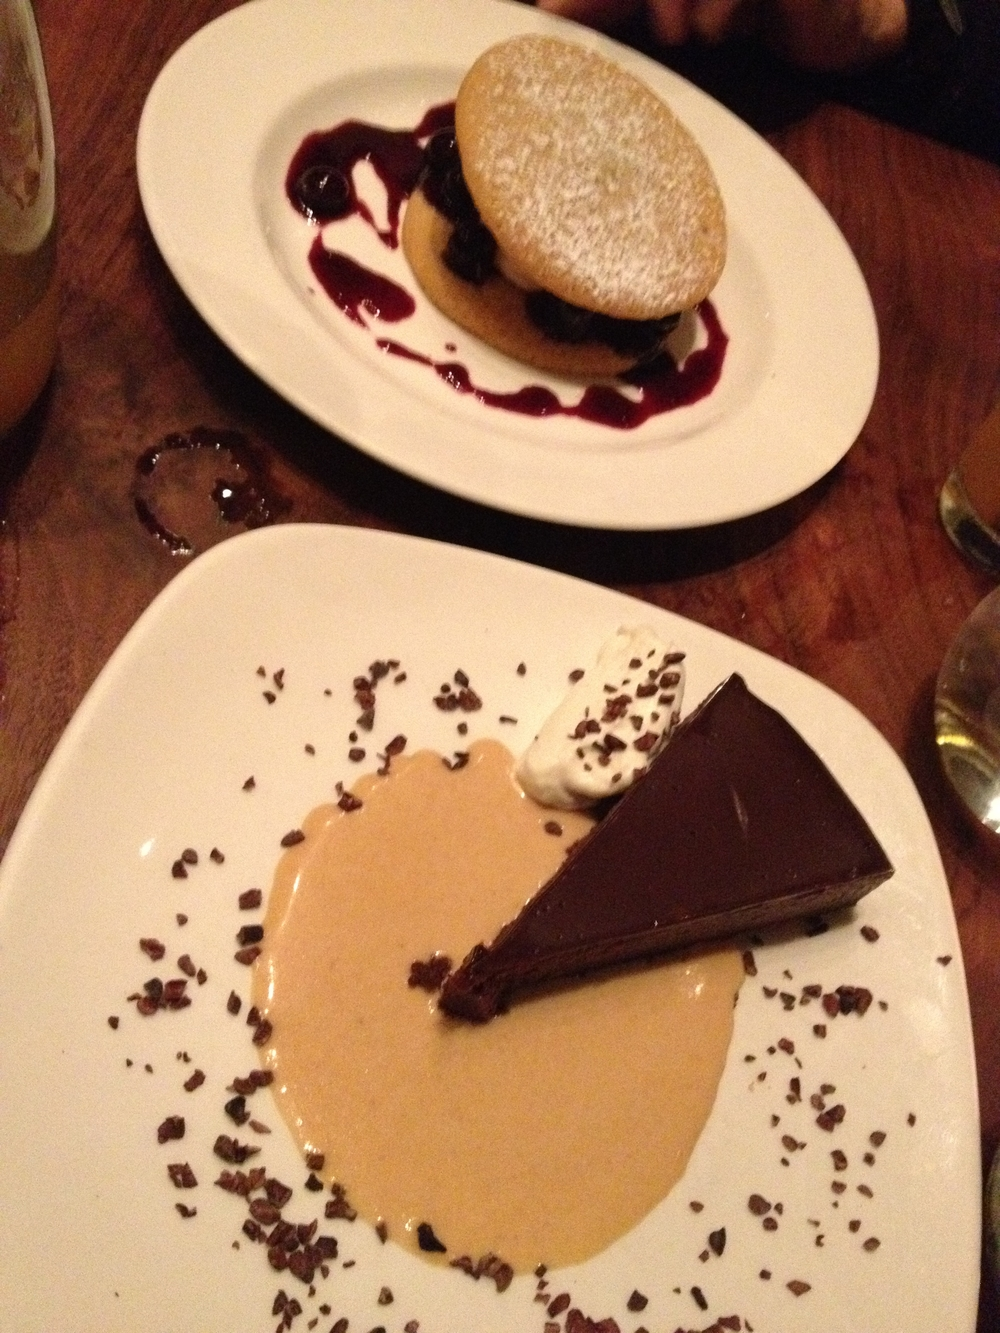 Peach Ice Cream Sandwich & Flourless Chocolate Torte